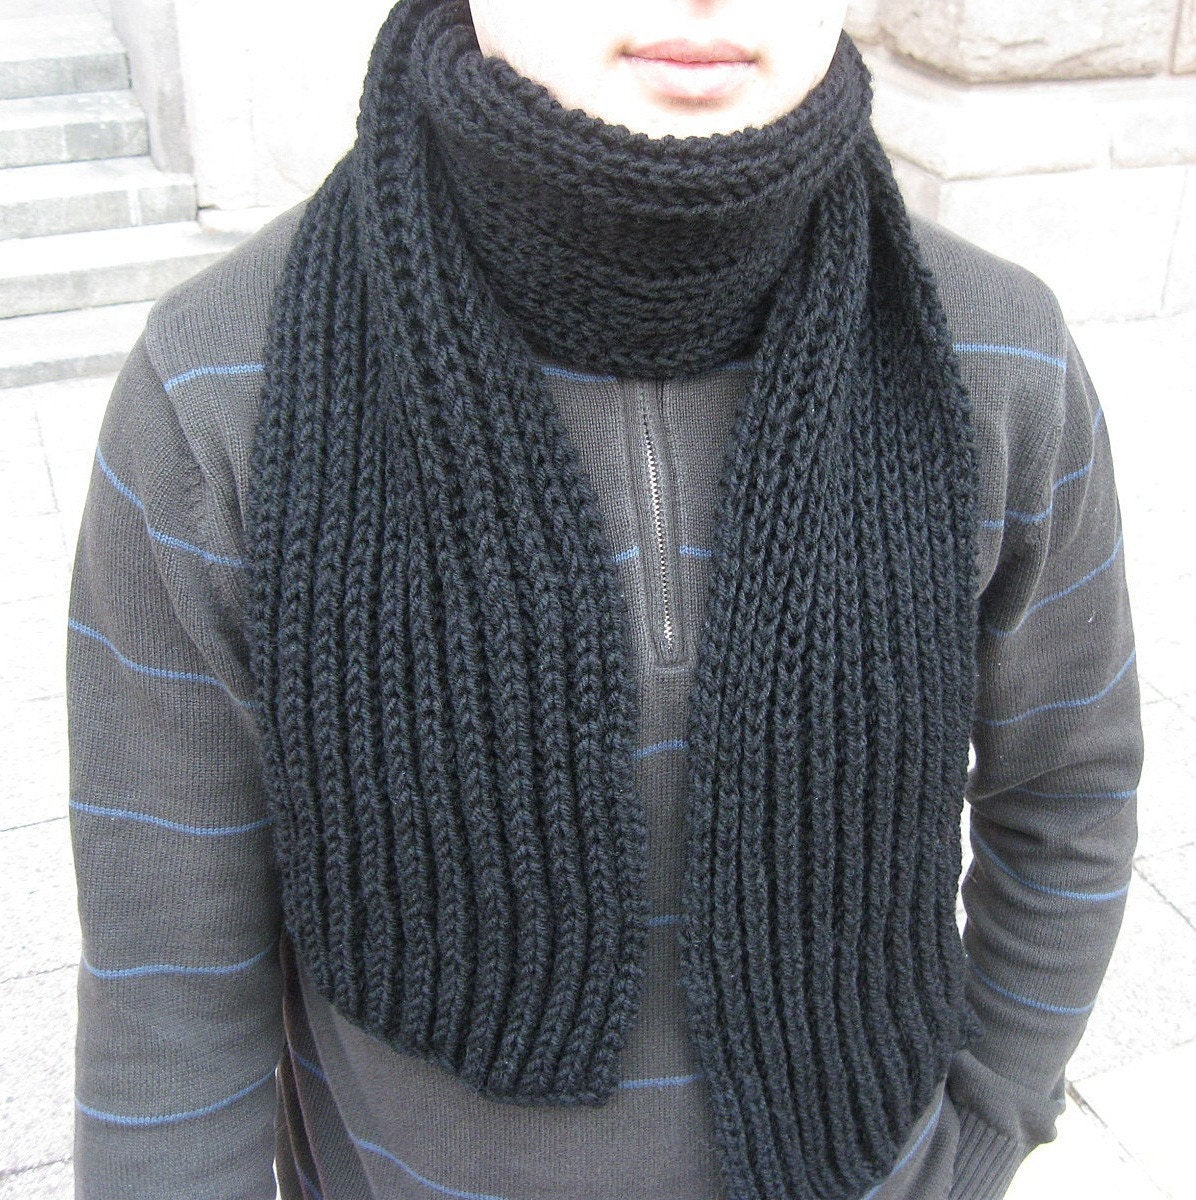 Knitting Patterns For Men Scarf : A young Manly Patterns Knitted Scarves For Men Free